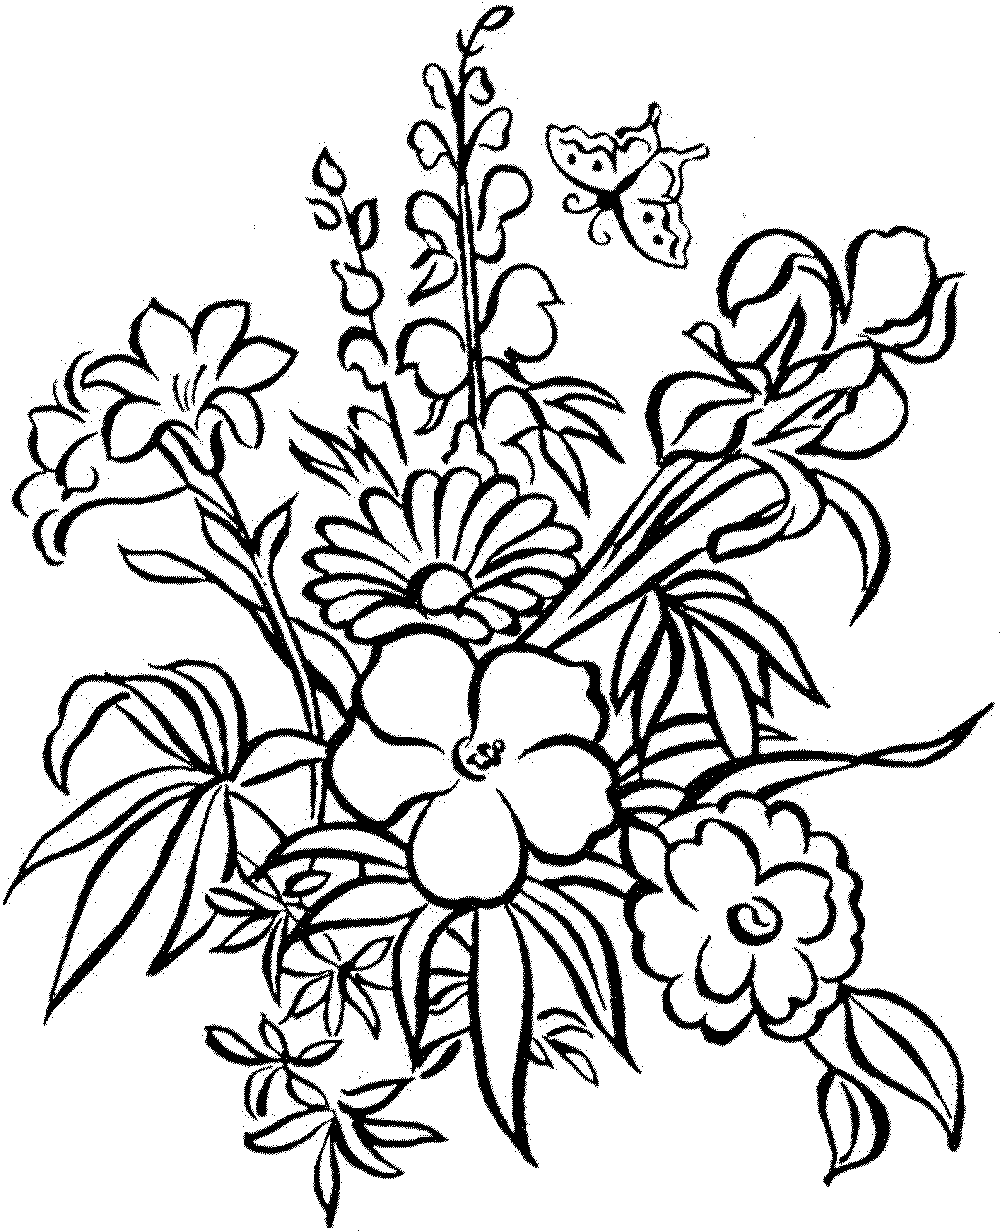 coloring pages flowers printable free printable flower coloring pages for kids best pages coloring printable flowers